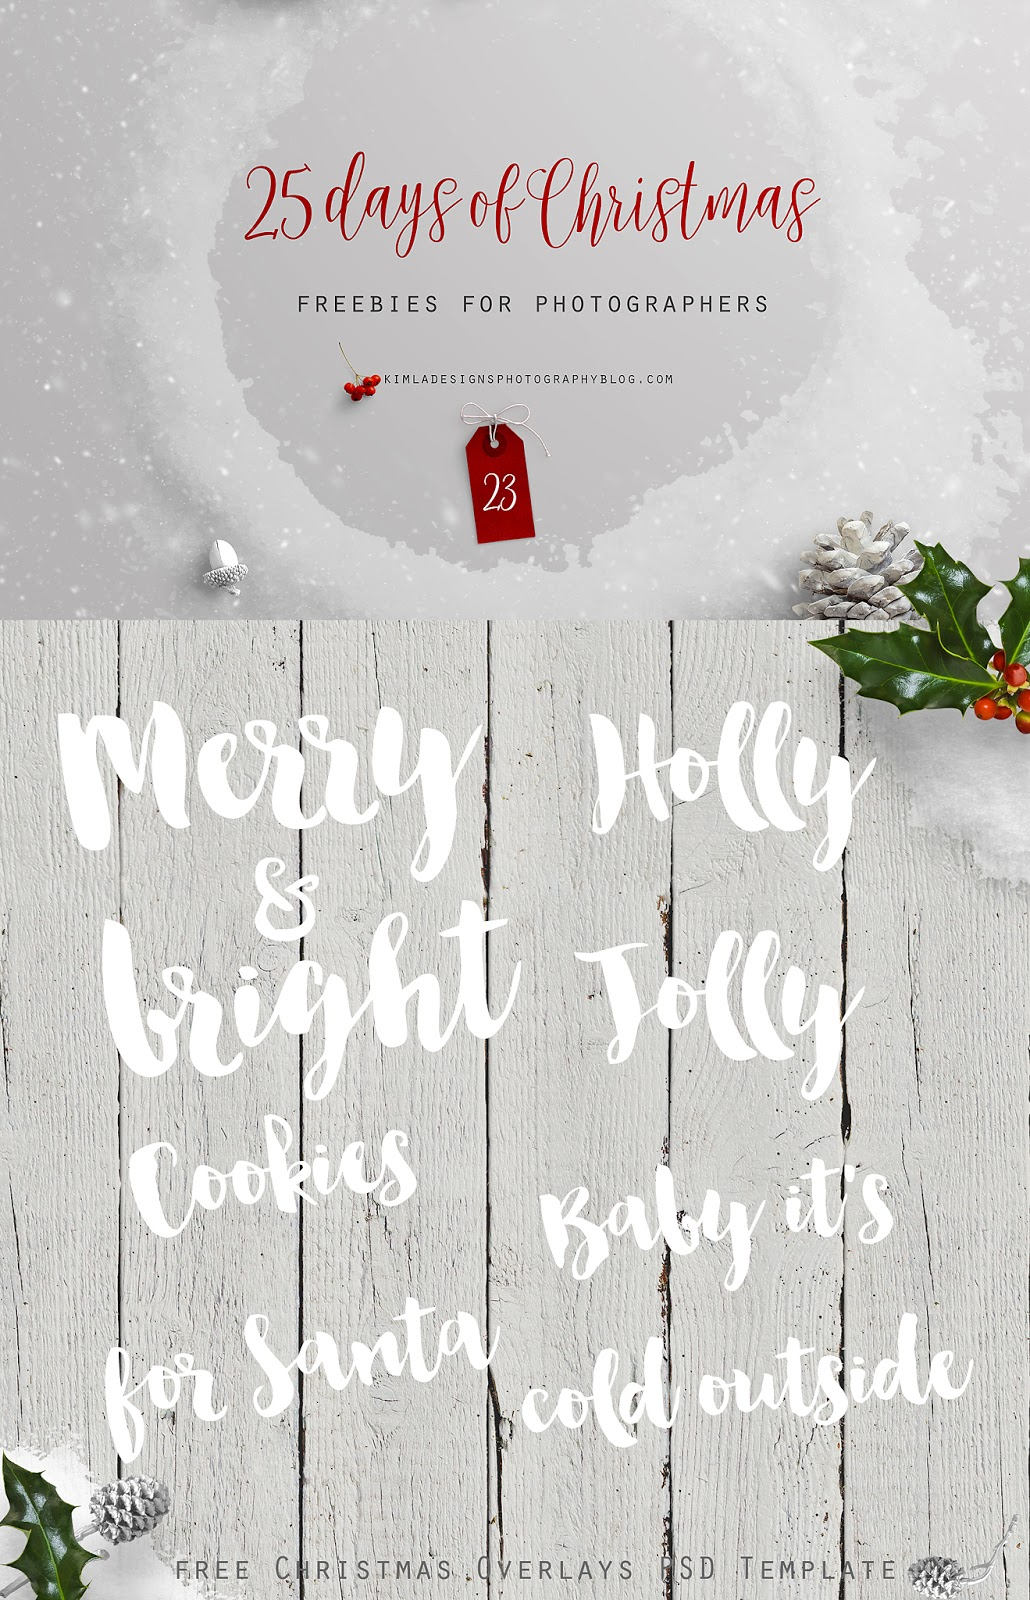 25 Days of Christmas Freebies for Photographers Day 23rd